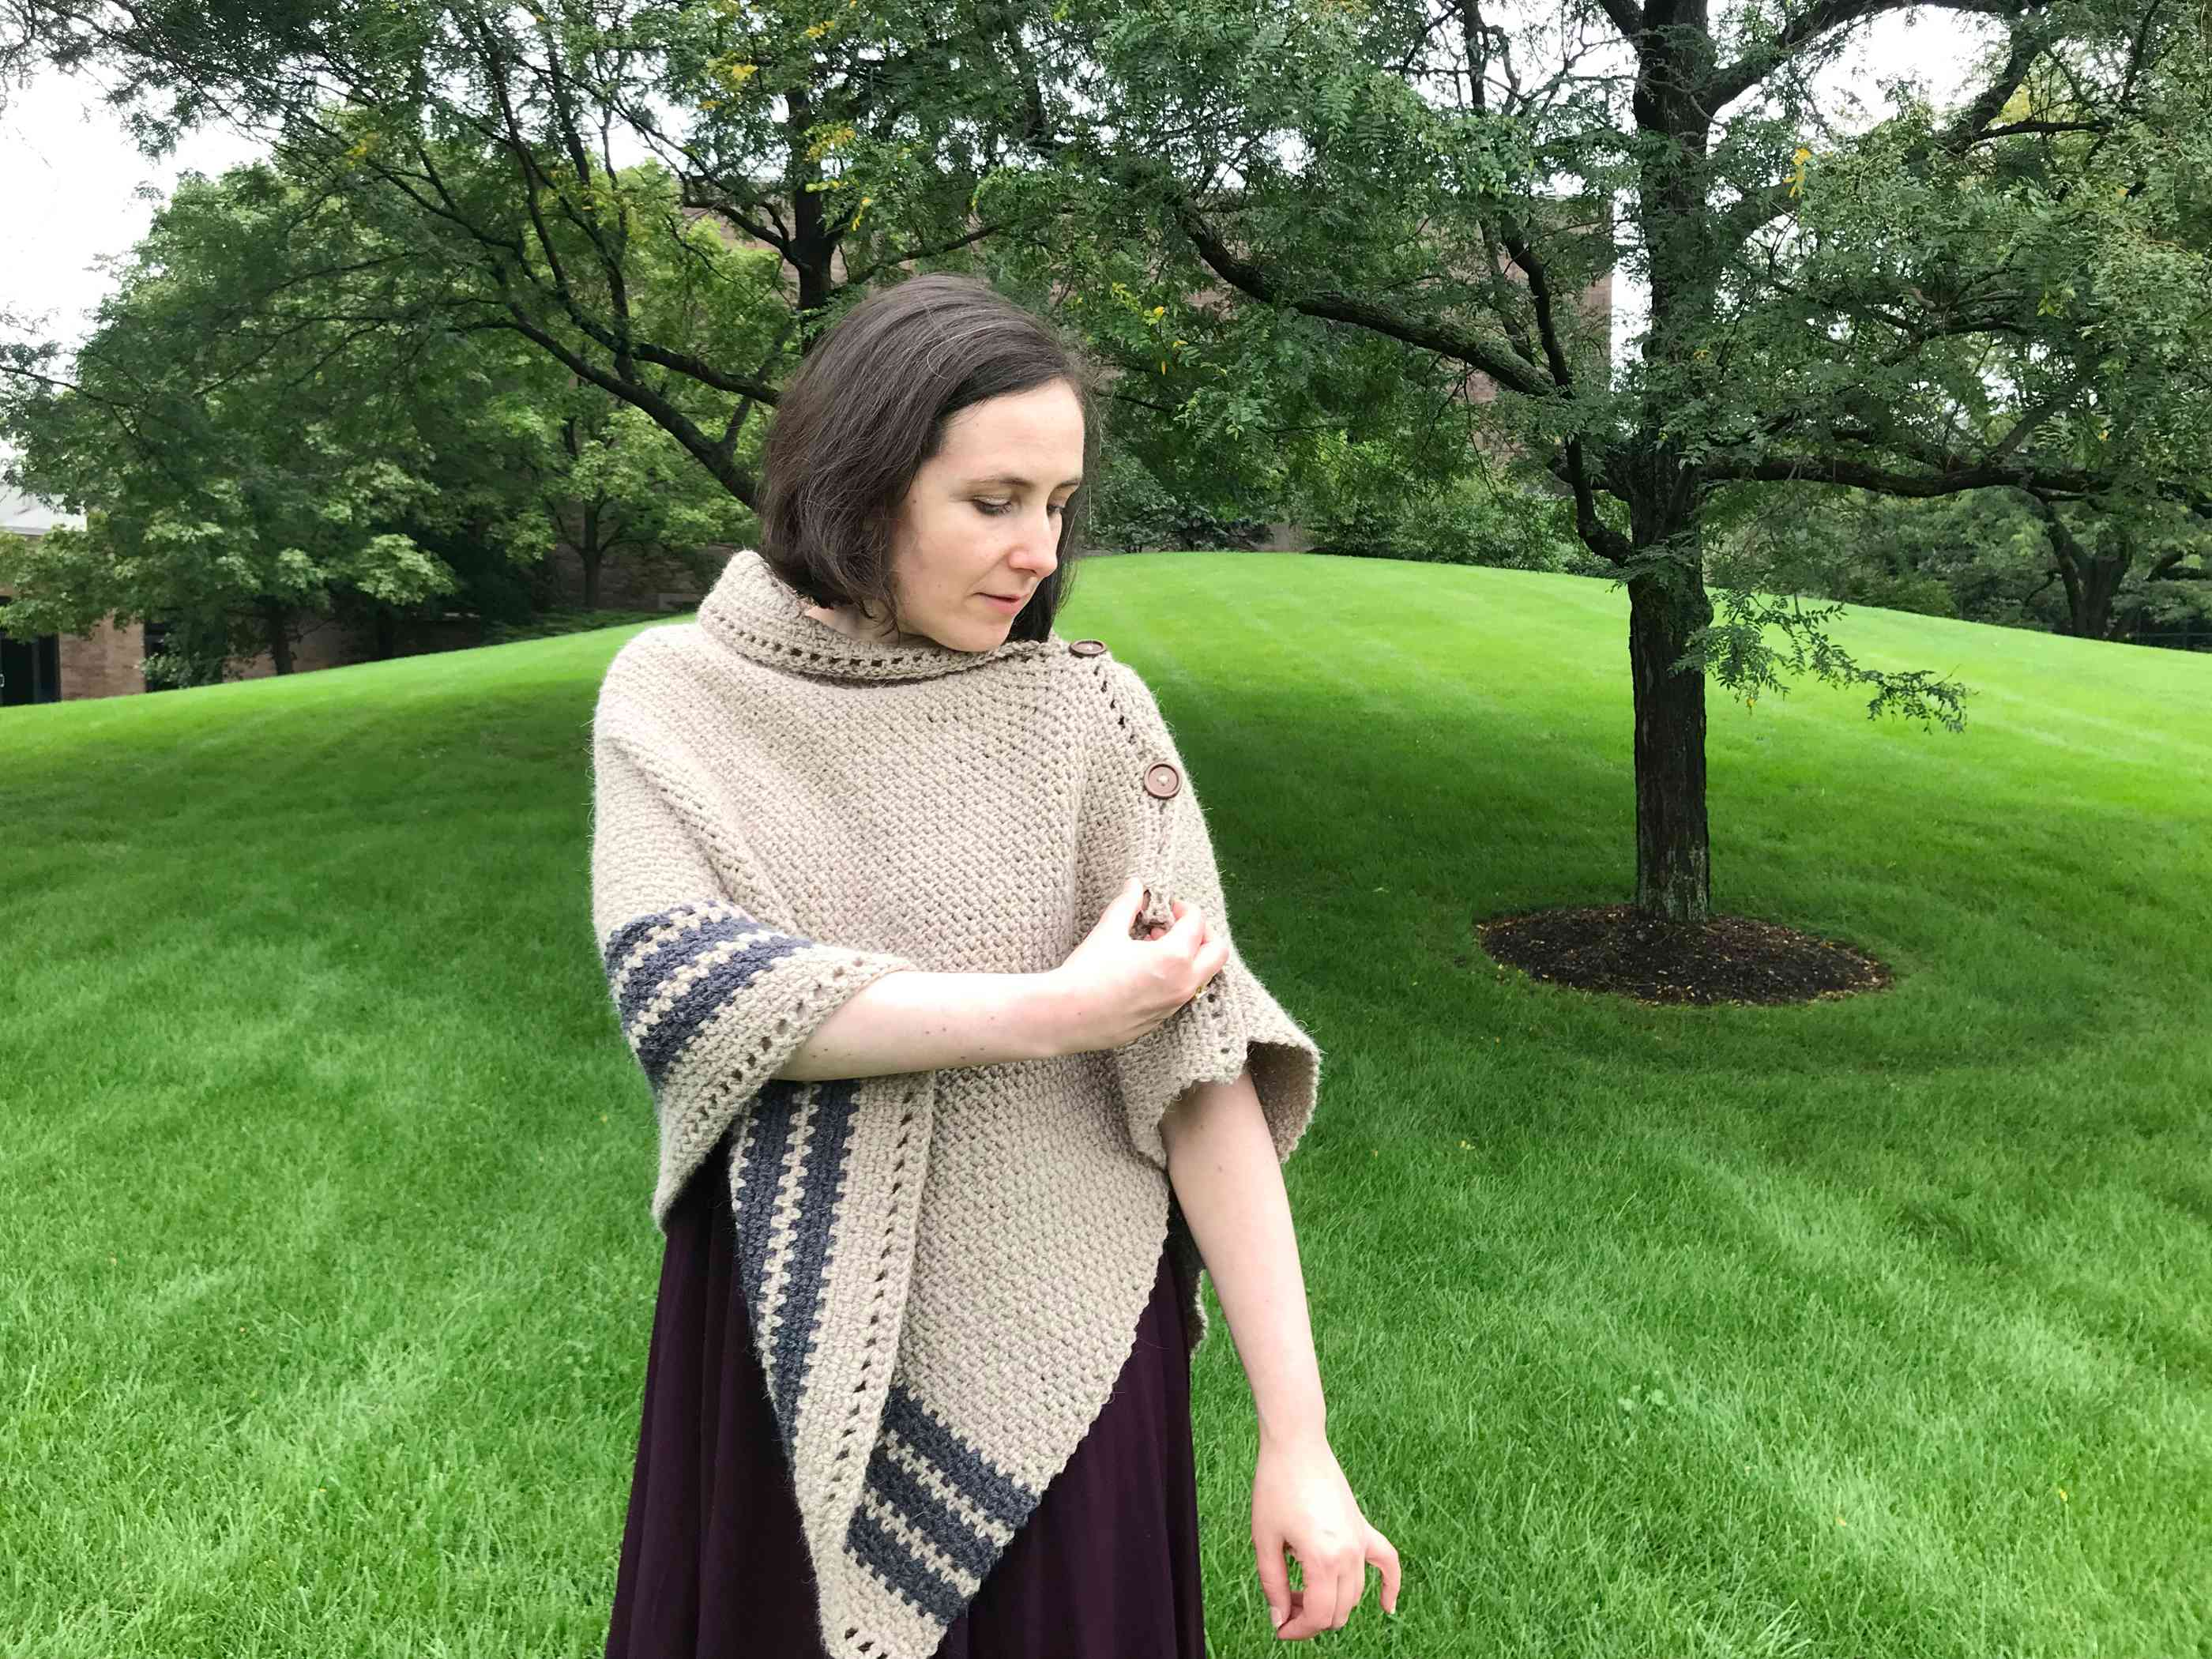 Changing the Buttoning on the Crochet Poncho